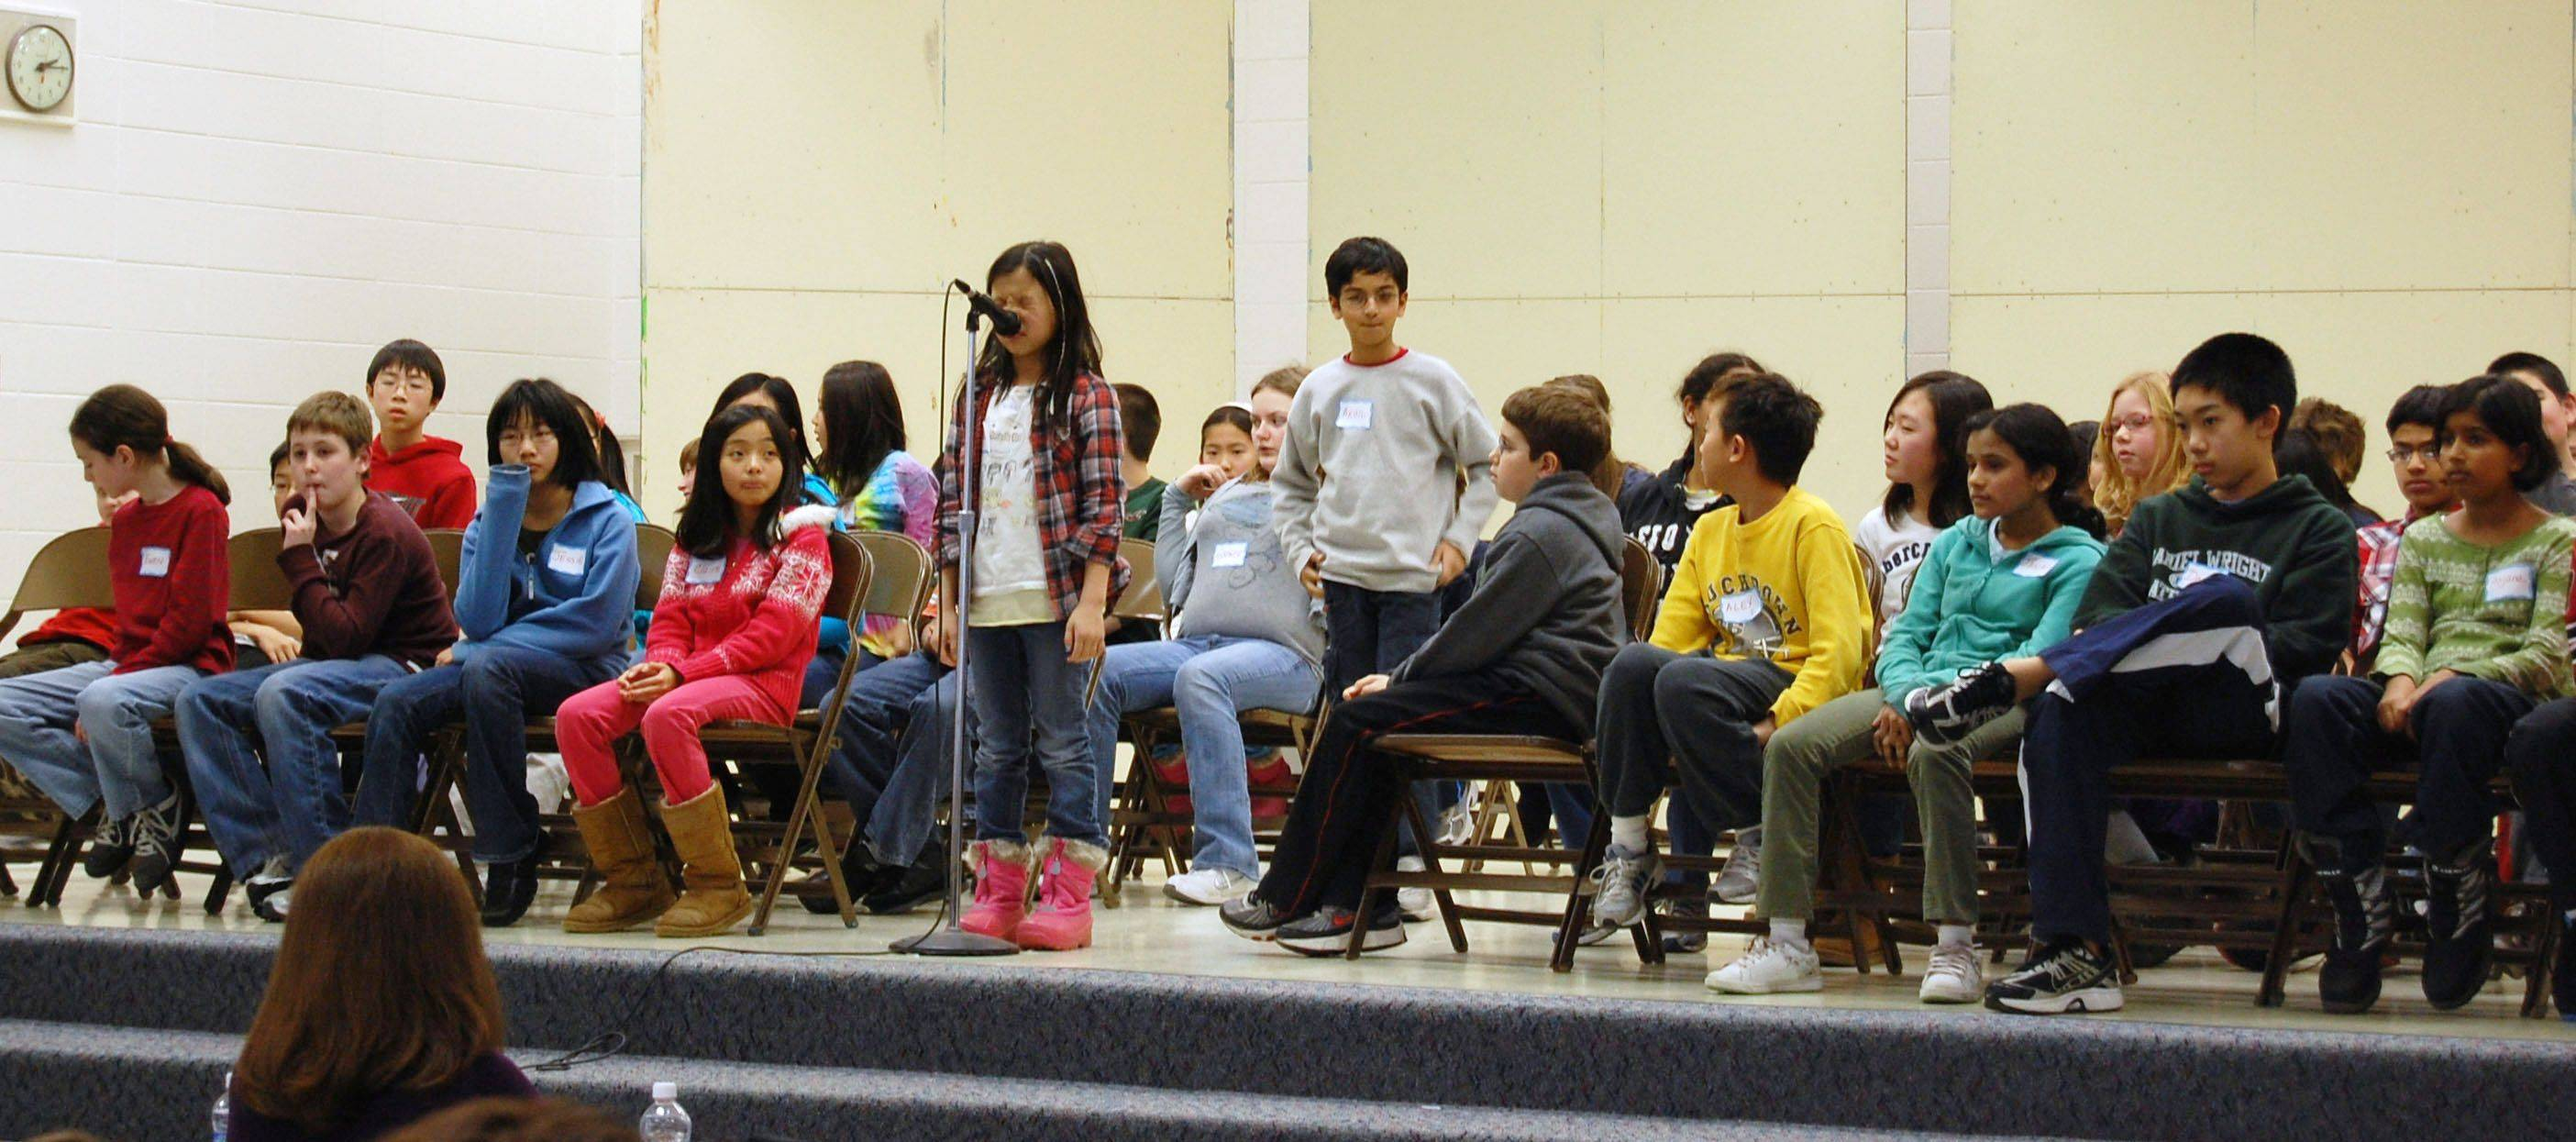 Lincolnshire-Prairie View Elementary District 103 will host its districtwide spelling bee Tuesday, Jan. 31, at Daniel Wright Junior High School.